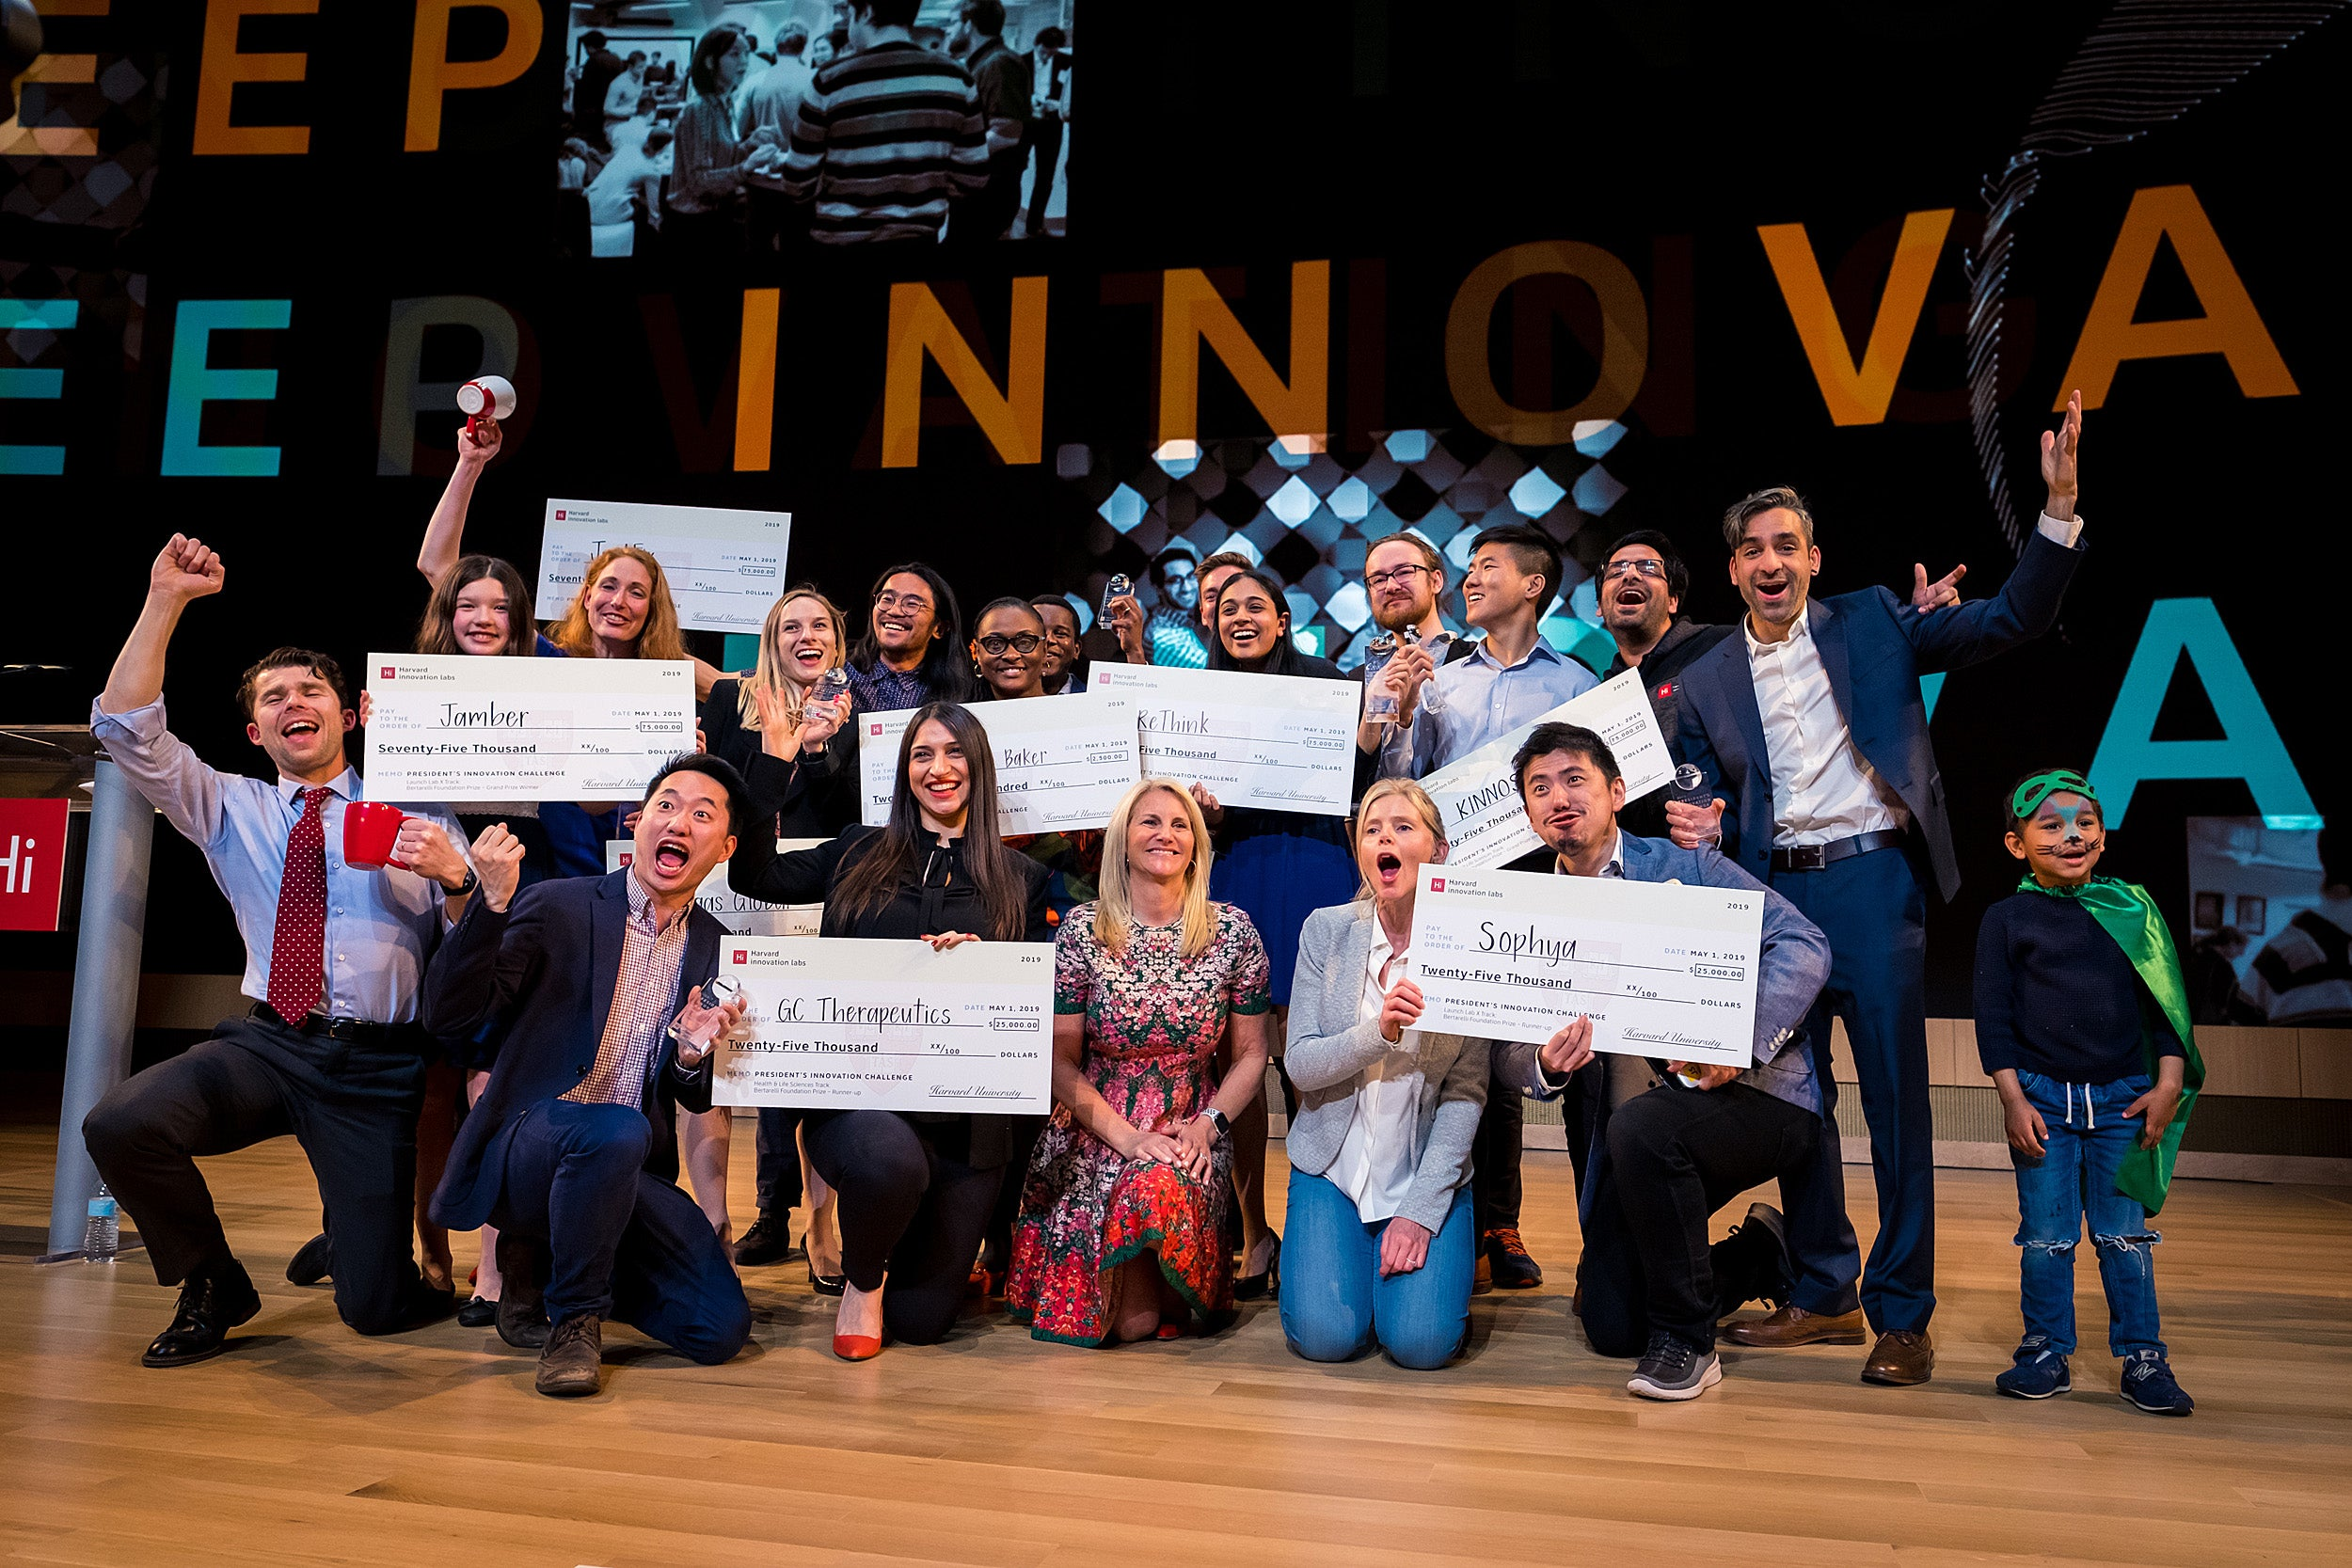 Innovation Challenge awardees celebrate onstage with their prize money checks.